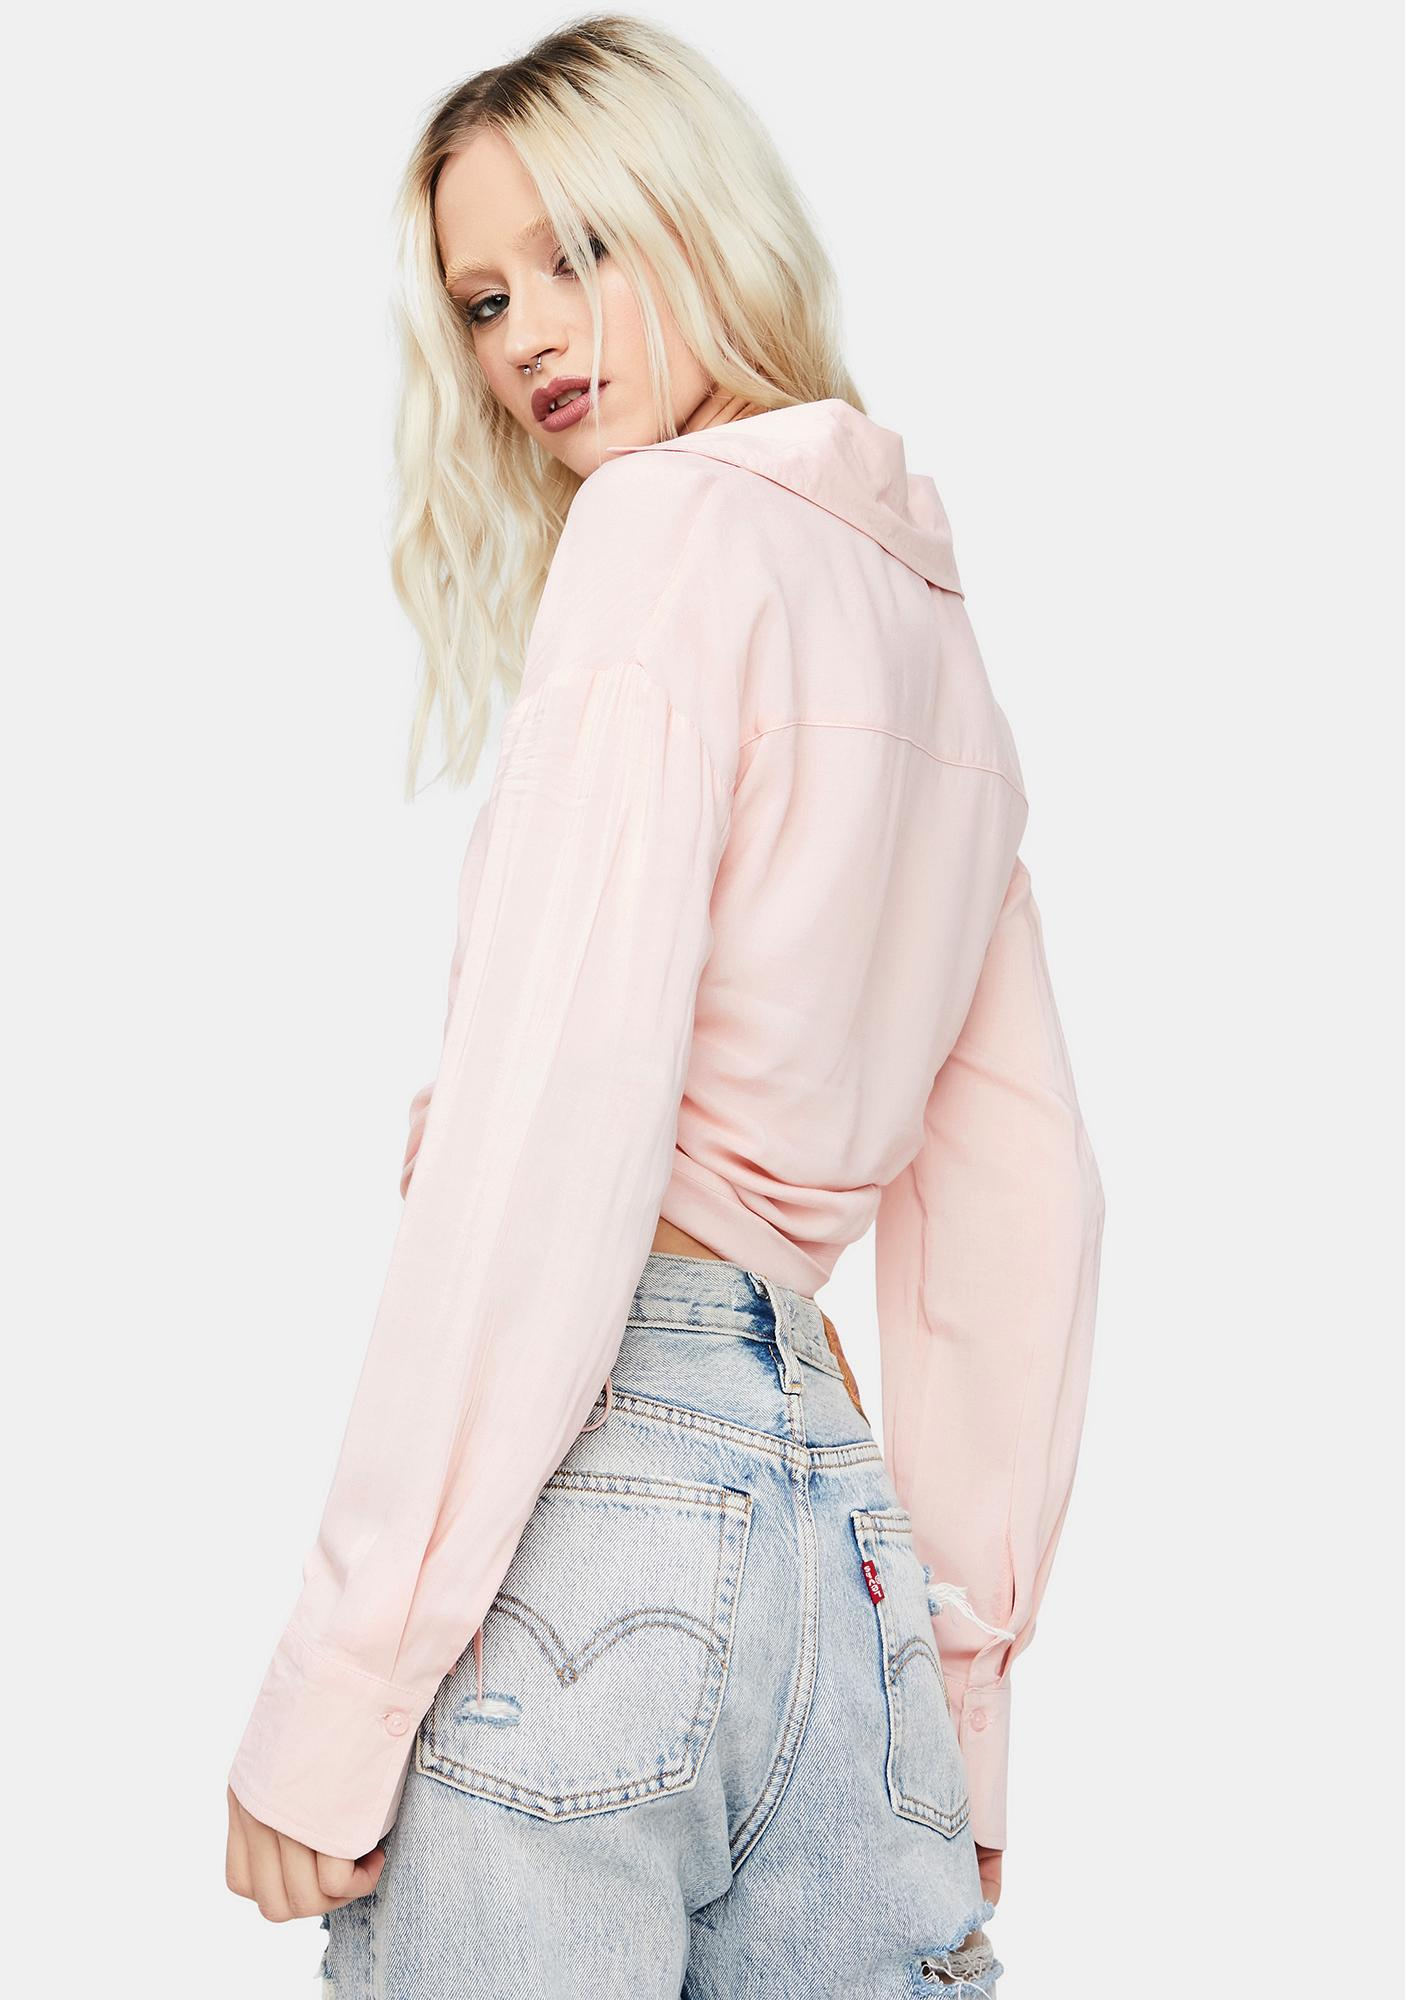 Blush Roll With It Ruched Button Up Top